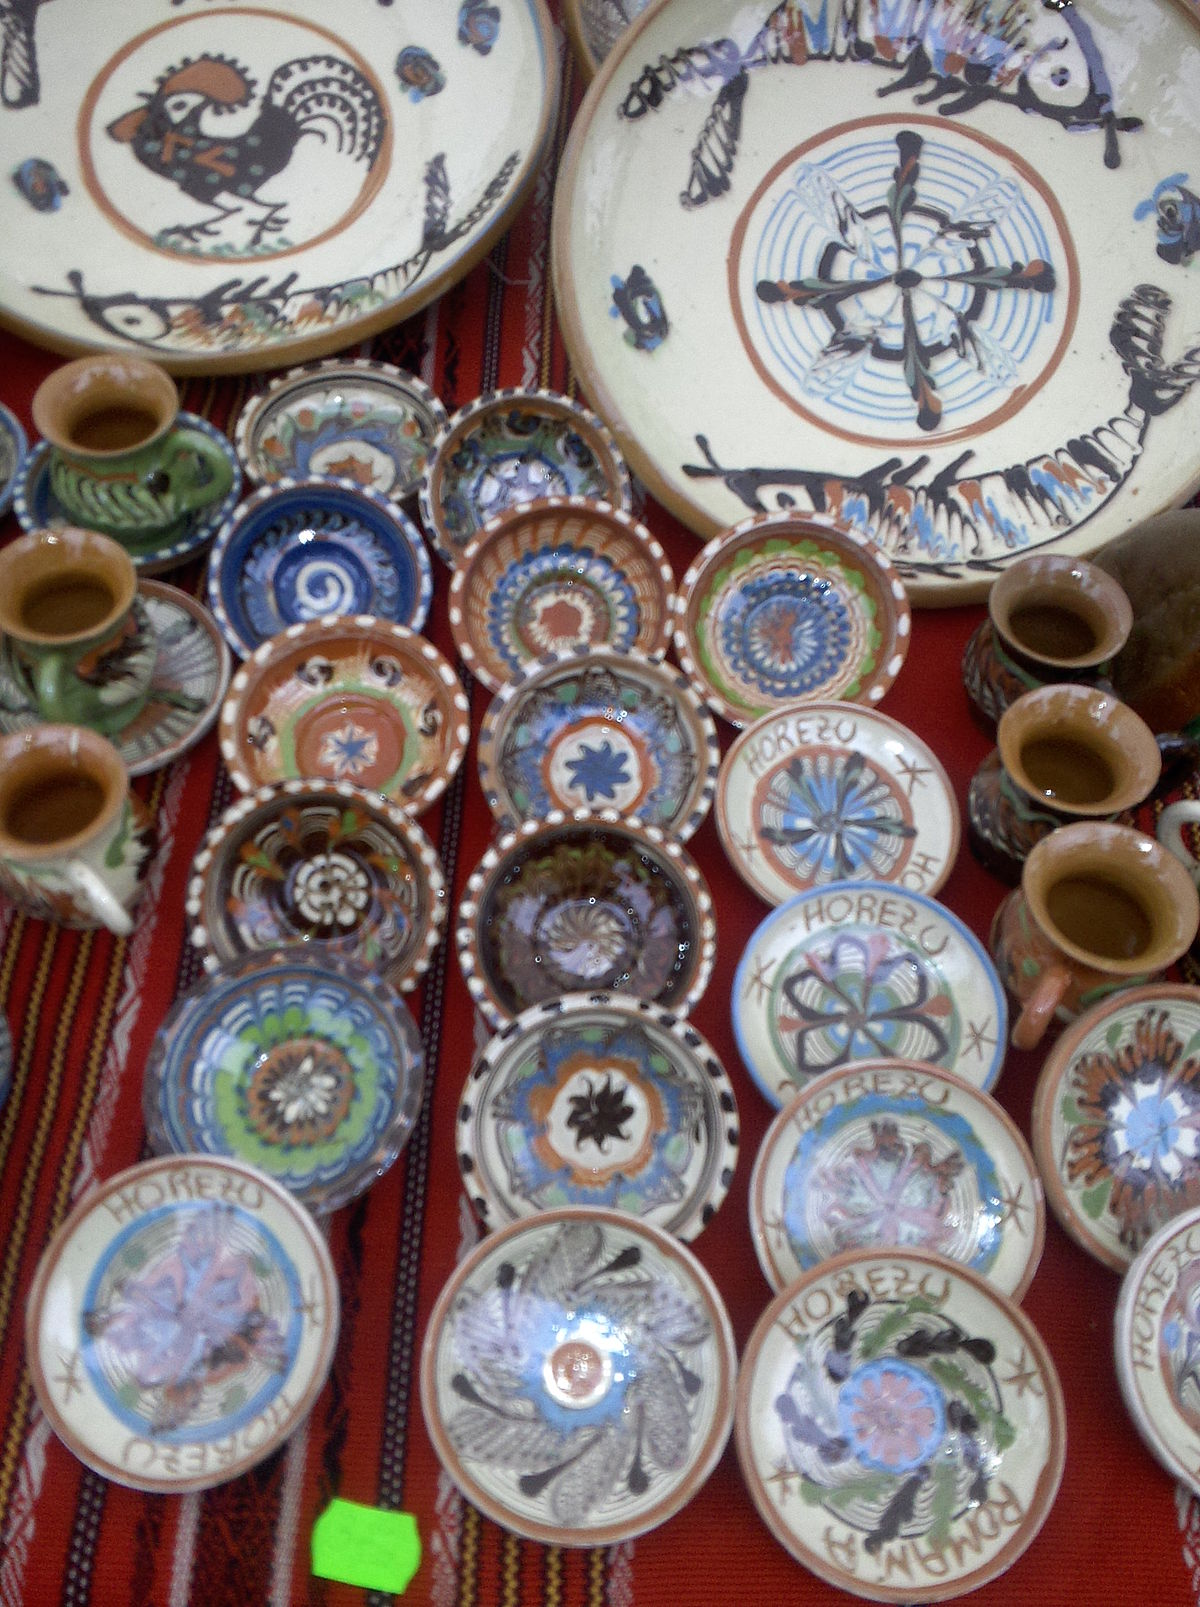 Horezu Ceramics Wikipedia